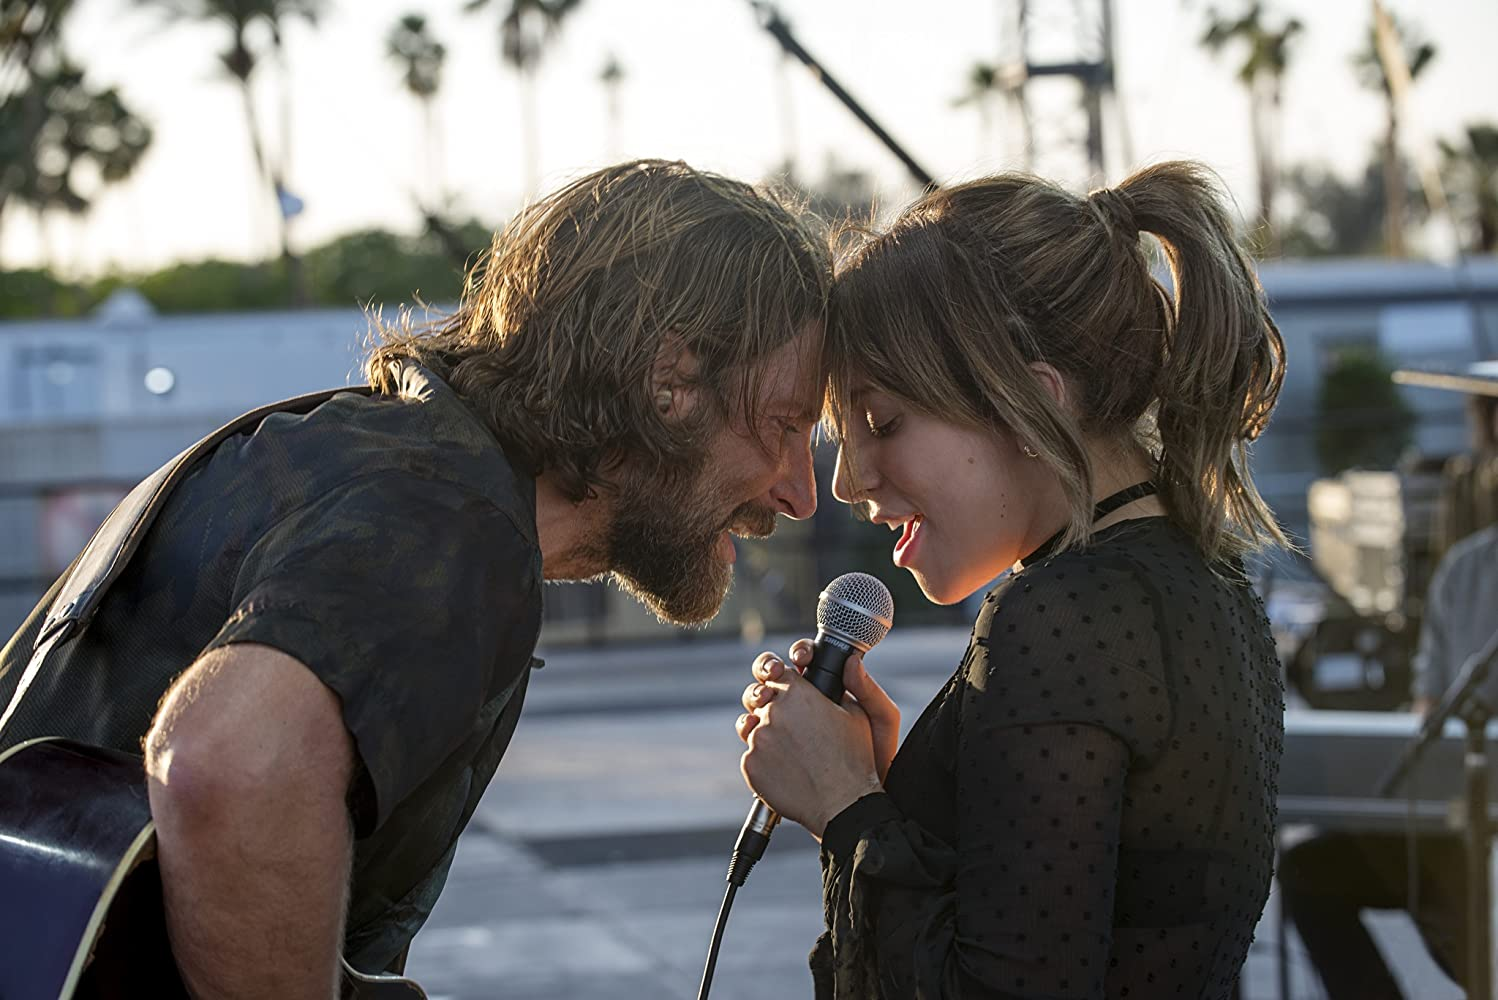 Bradley Cooper and Lady Gaga / A Star is Born / Warner Bros. Entertainment Inc & Metro-Goldwyn-Mayer Pictures. © 2018. All rights reserved.